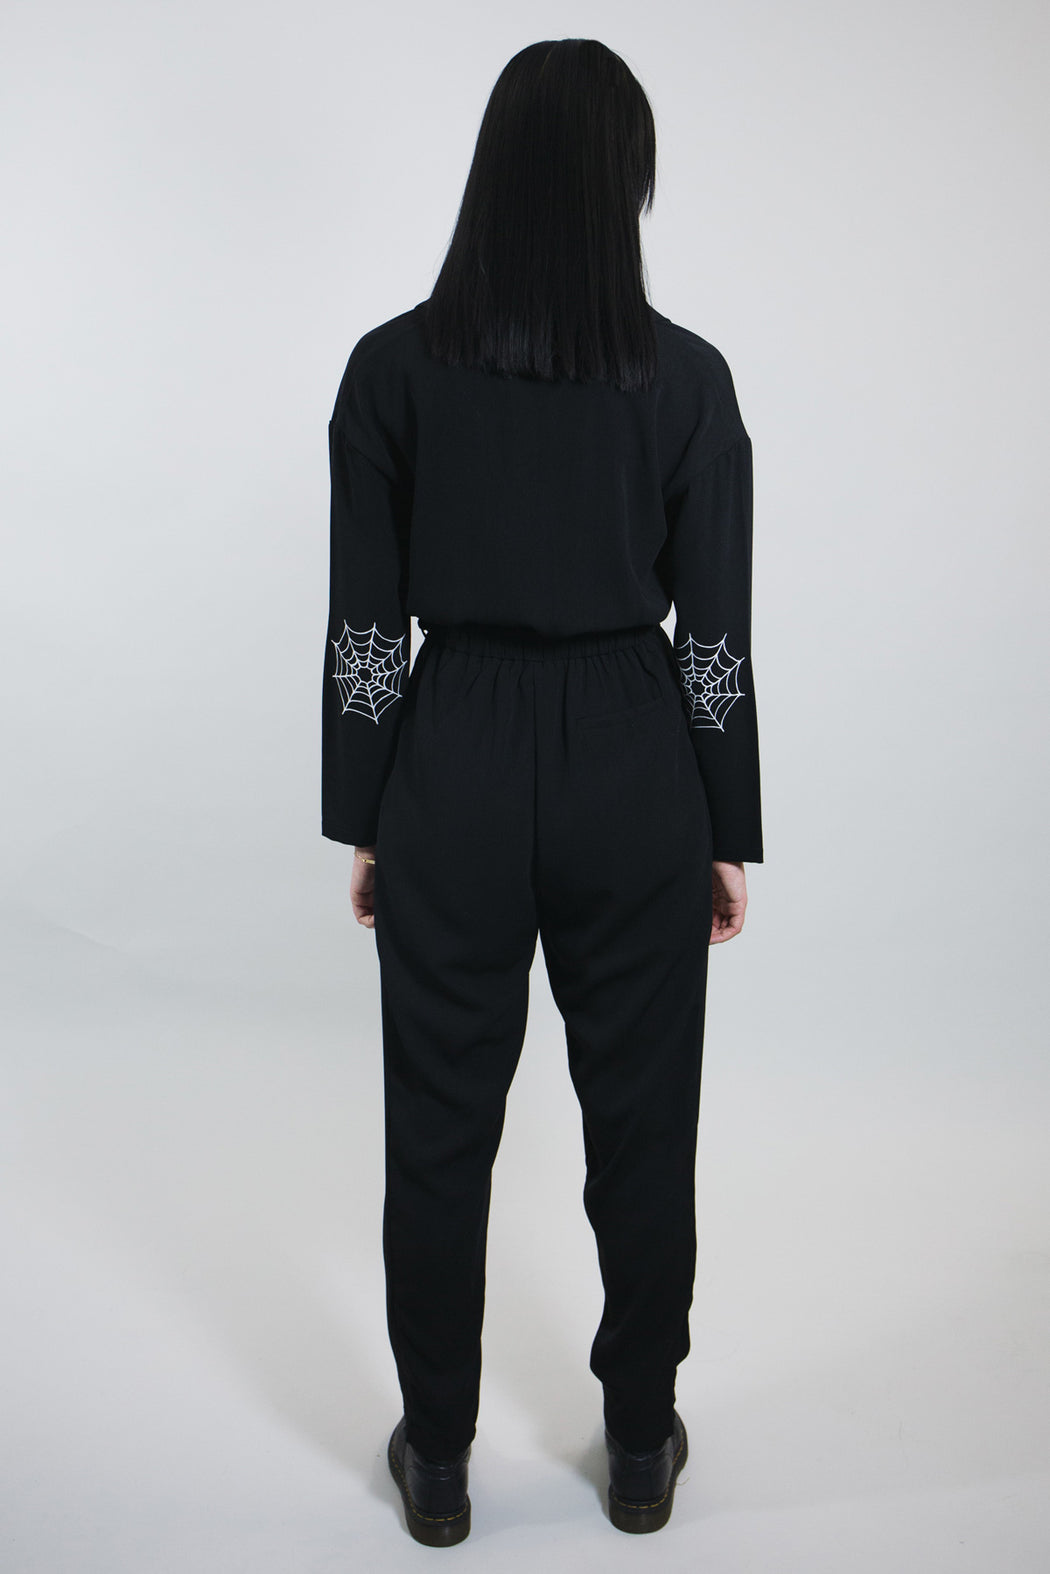 mary wyatt london black jumpsuit with spider web printed on elbow and belt alternative goth womens fashion